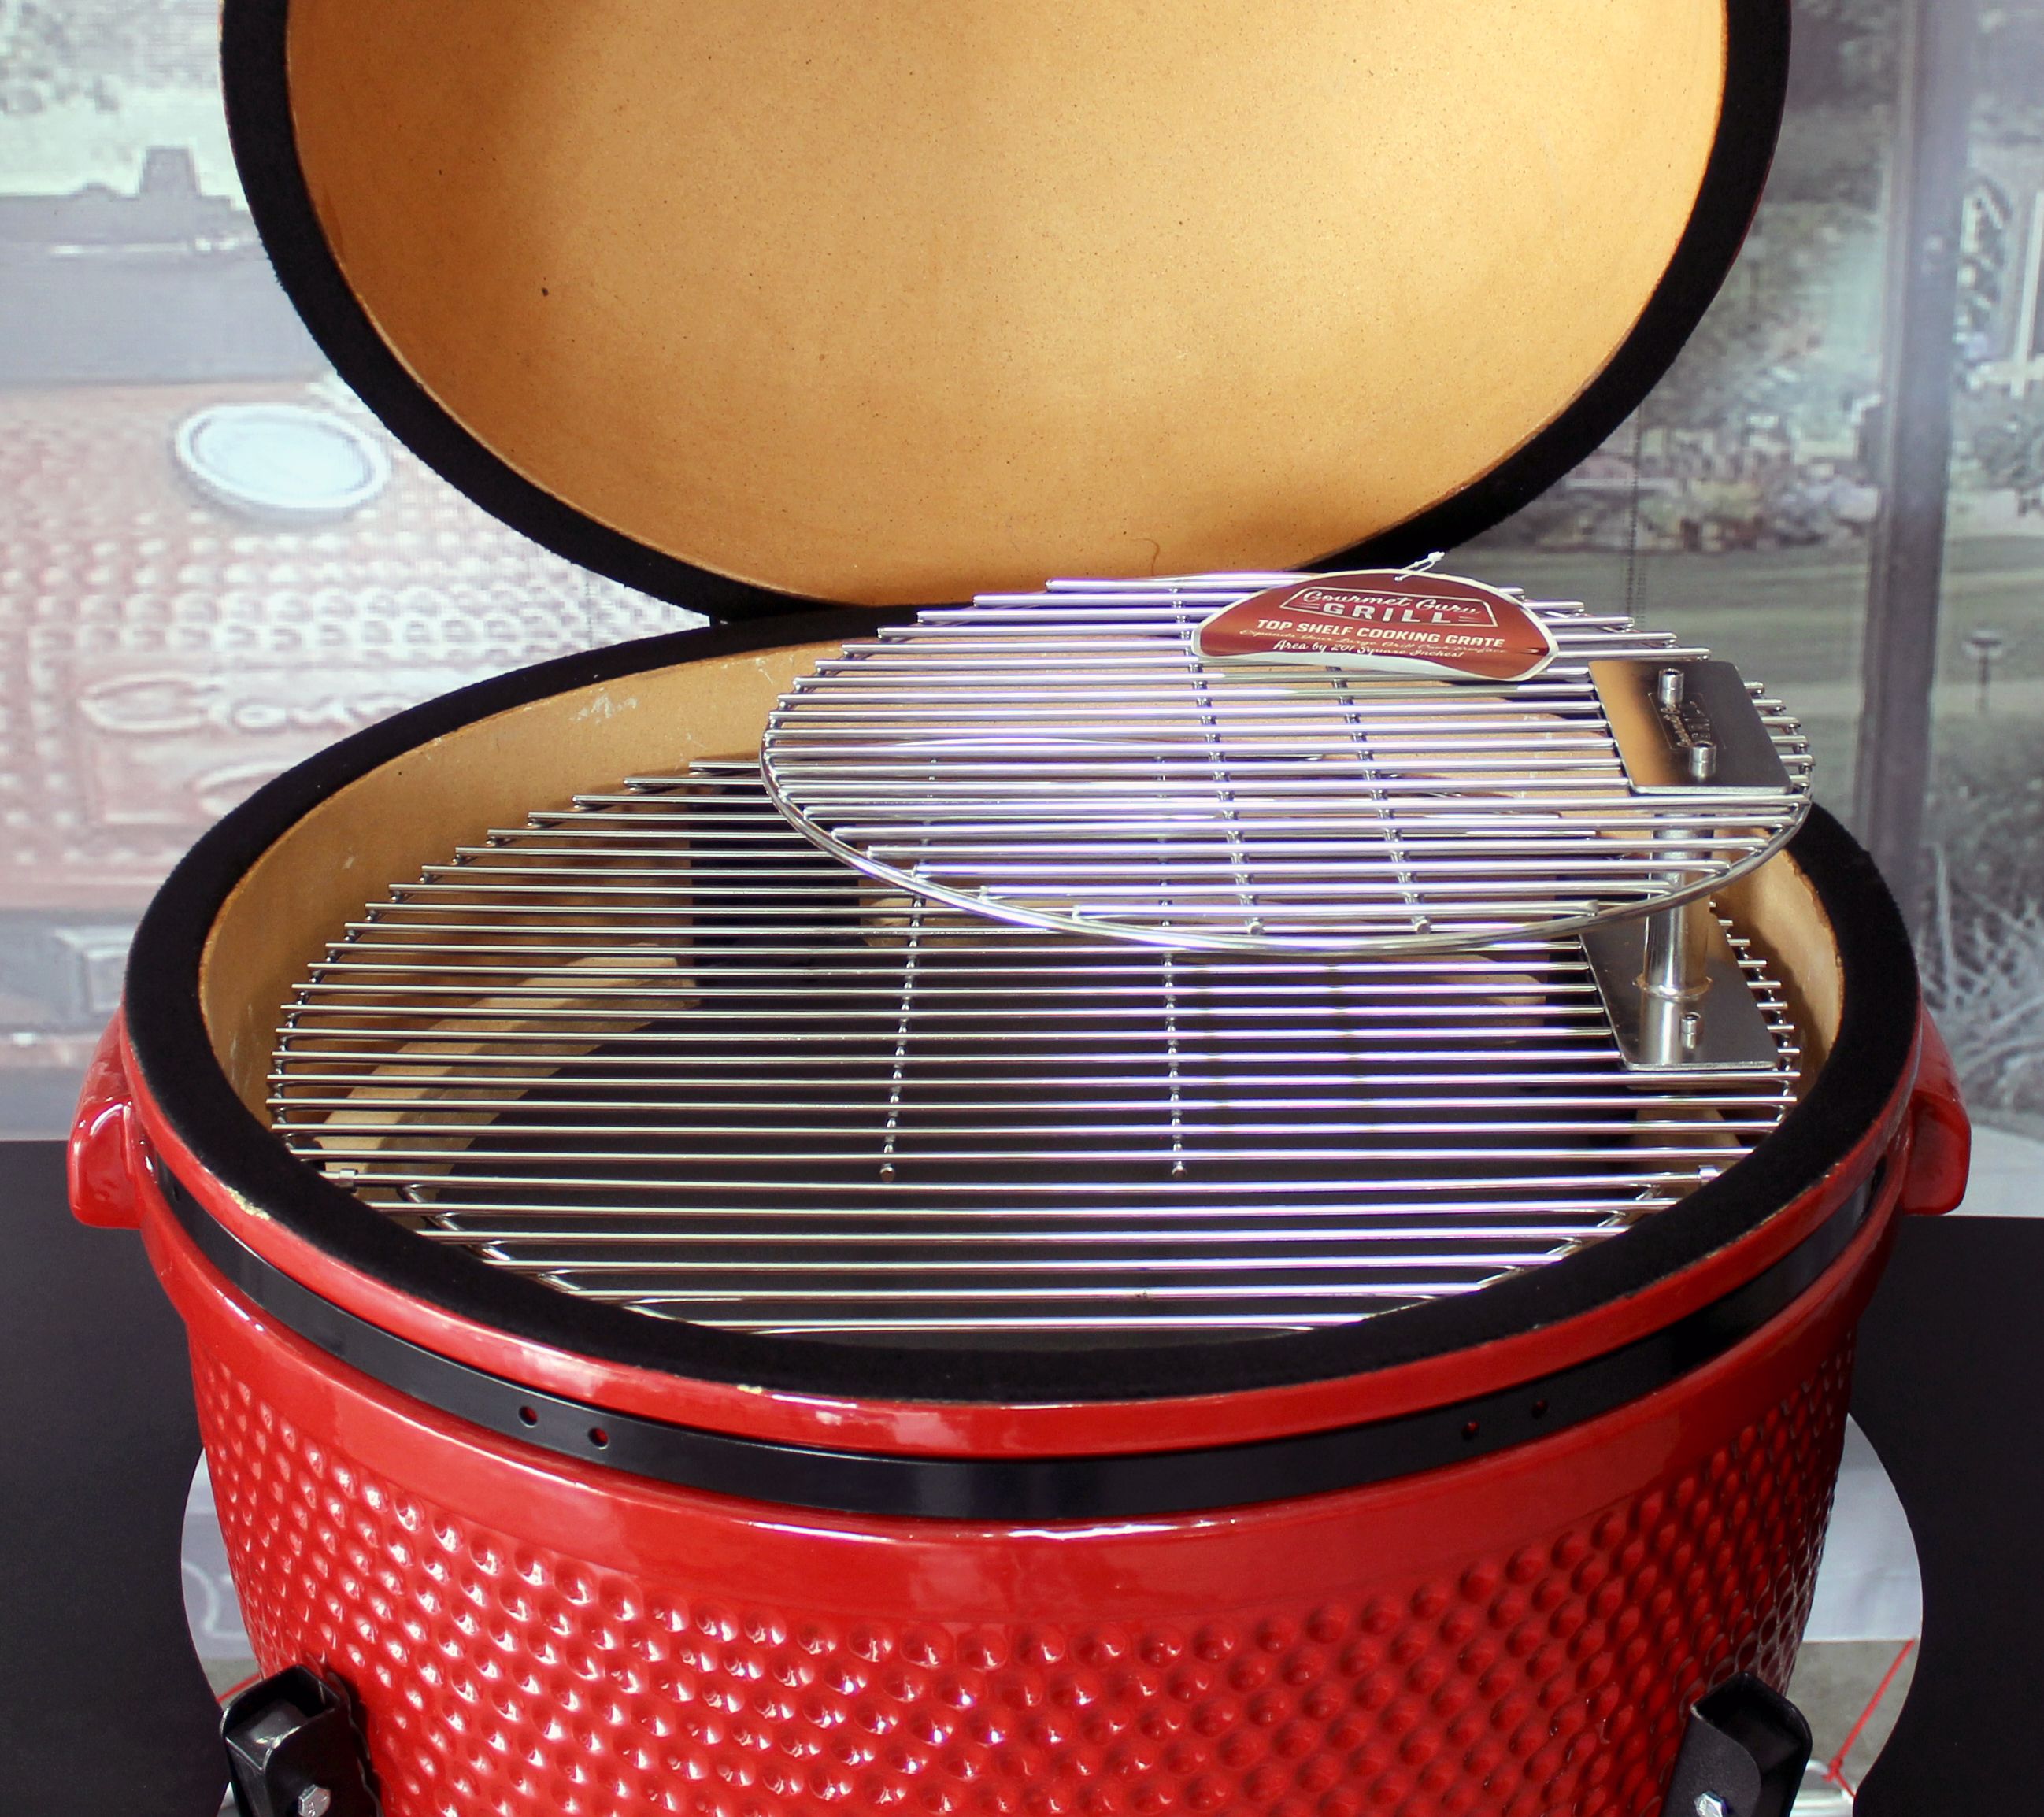 Get the Extra Large Gourmet Guru Grill.